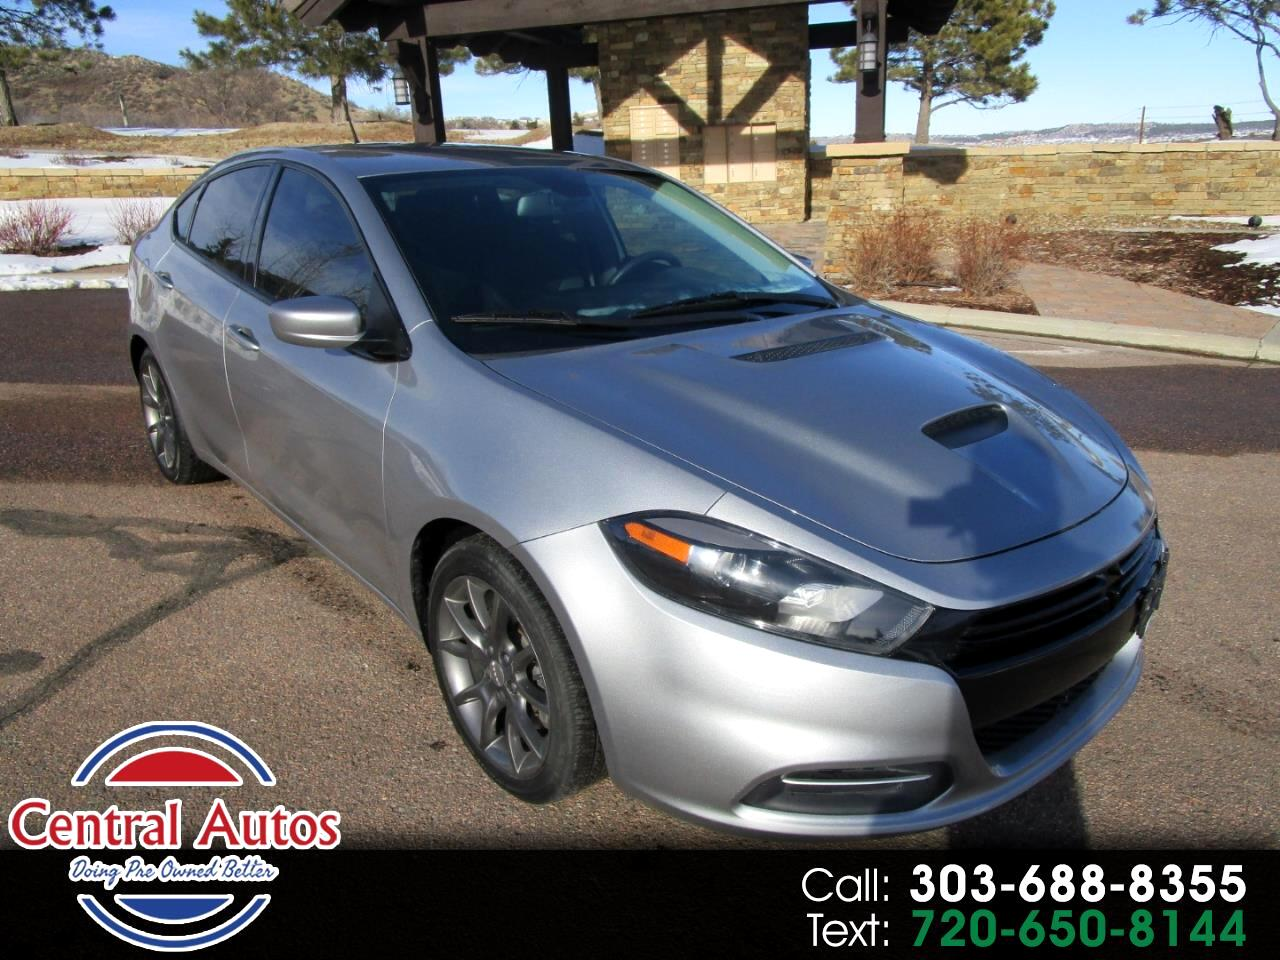 2016 Dodge Dart 4dr Sdn Turbo